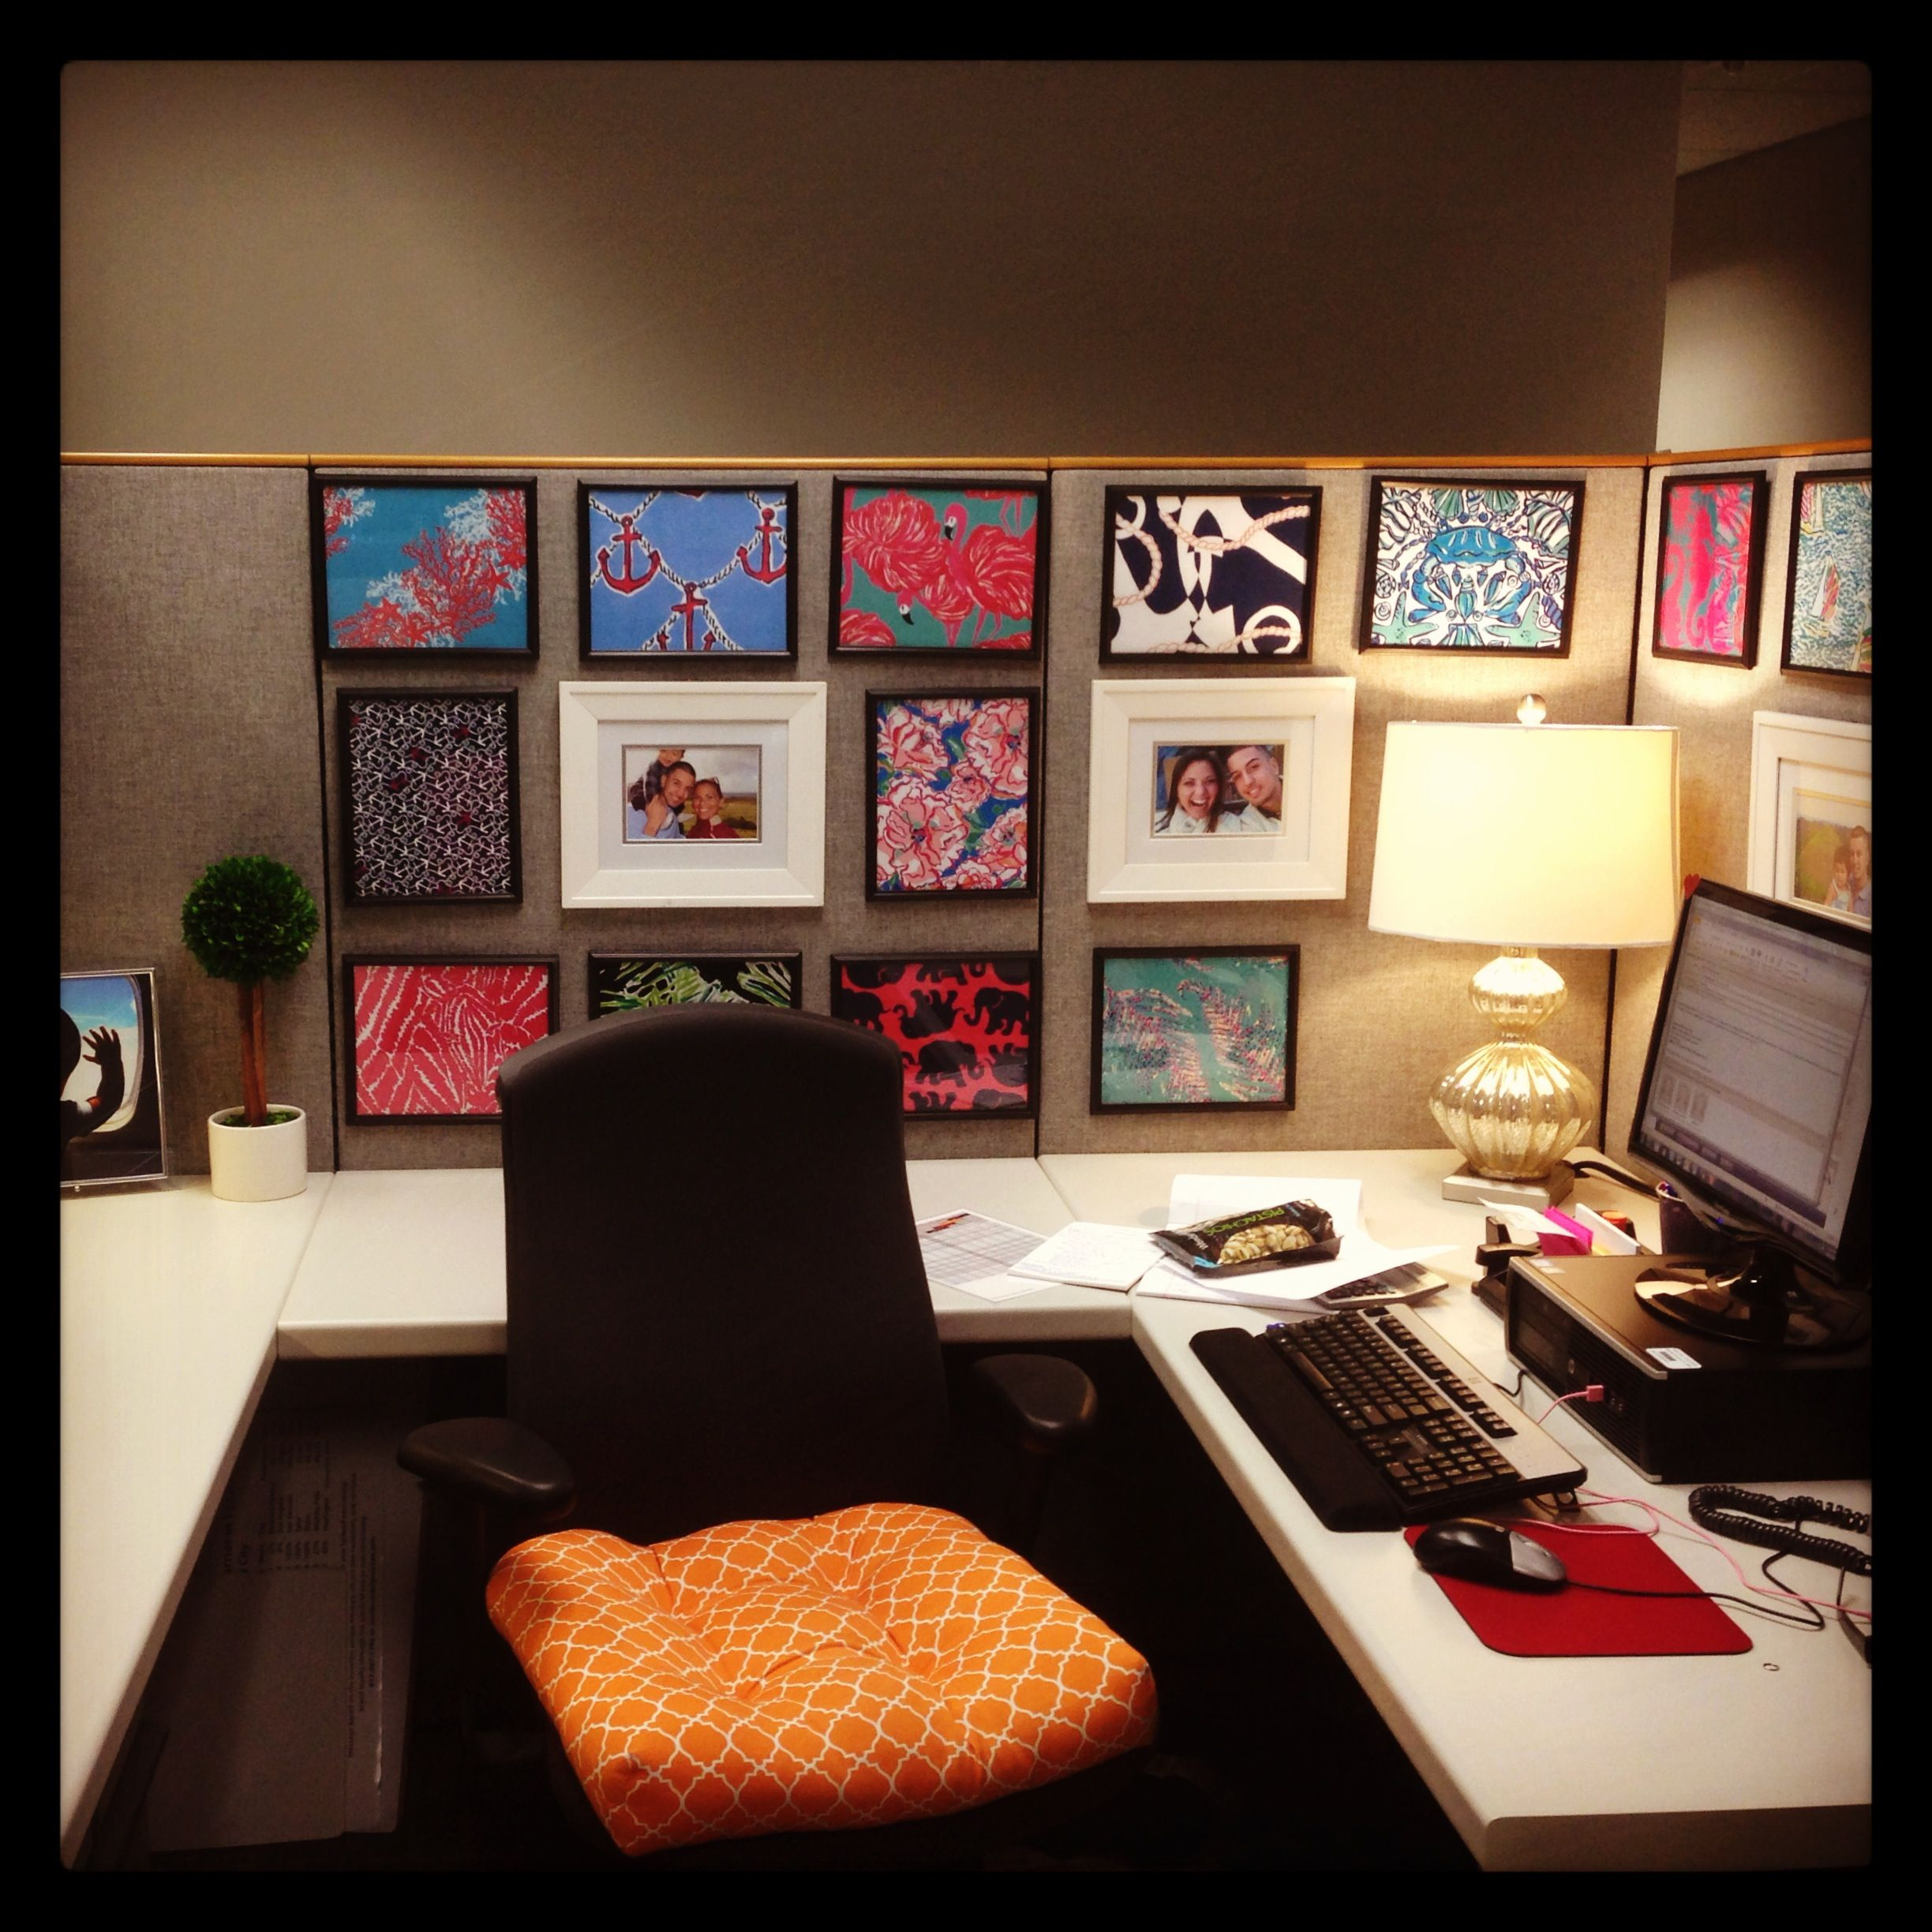 Cubicle Decor With Dollar Tree Frames And Printed Lilly Pulitzer